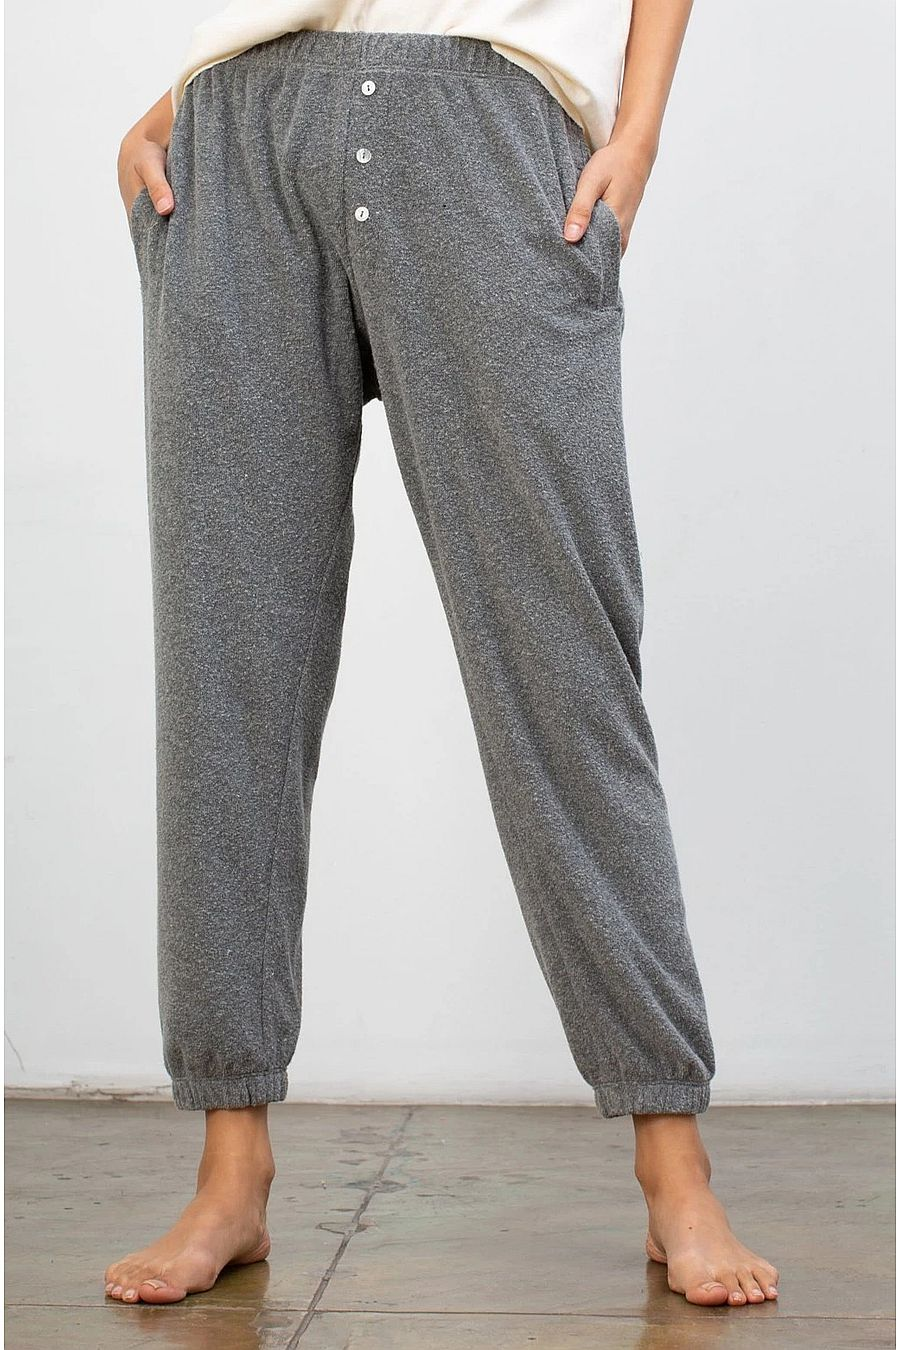 DONNI. Terry Henley Sweatpant - Heather Grey